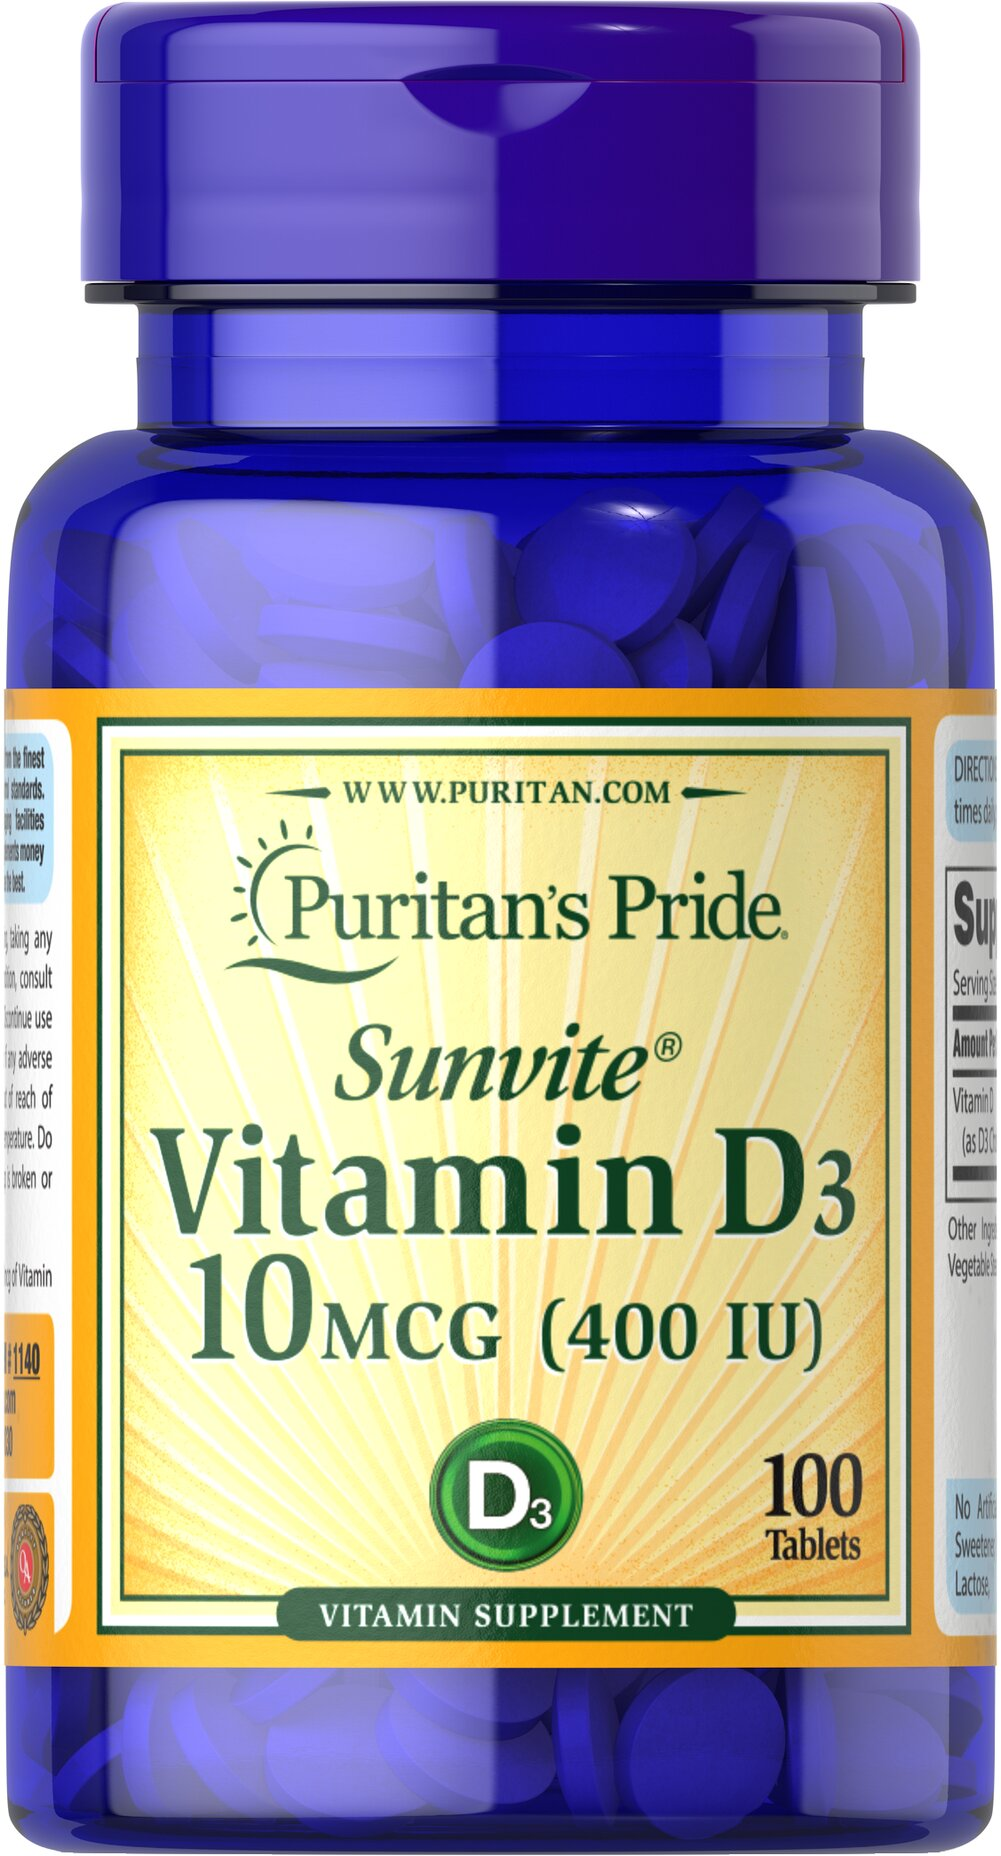 Vitamin D3 10 mcg (400 IU) Thumbnail Alternate Bottle View